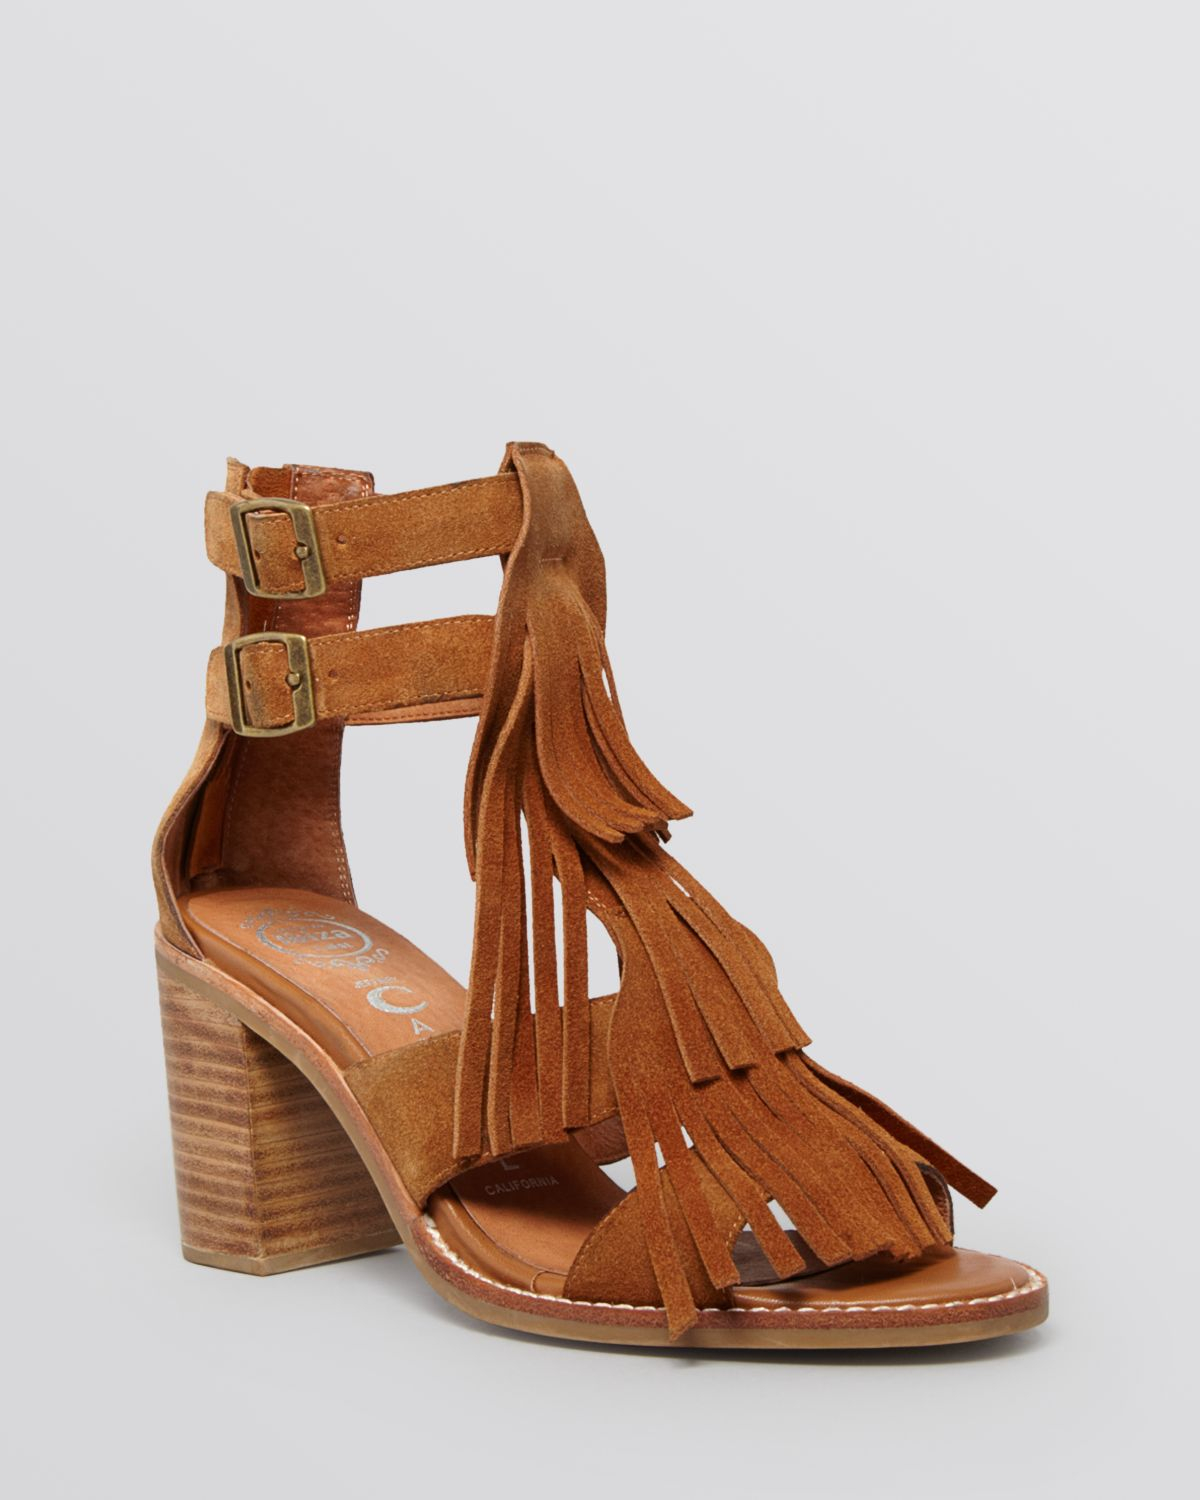 Jeffrey campbell Gladiator Sandals - Dodge Block Heel in Brown | Lyst